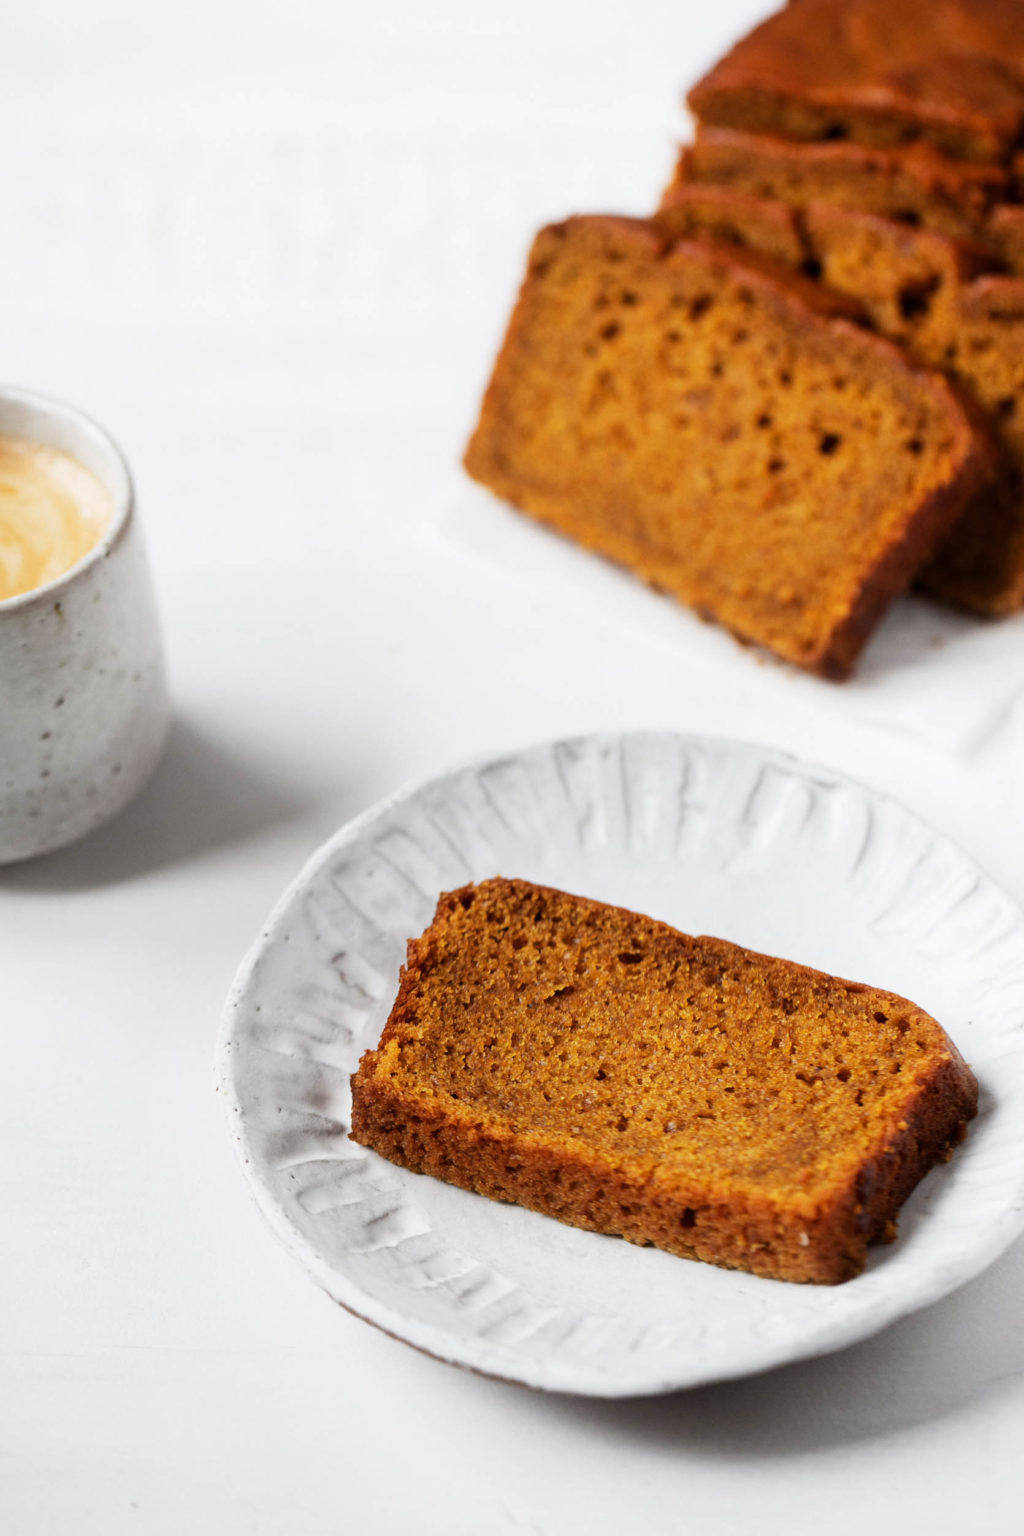 A piece of pumpkin bread, ready for snacking along with a frothy latte. And slices of more bread in the background.